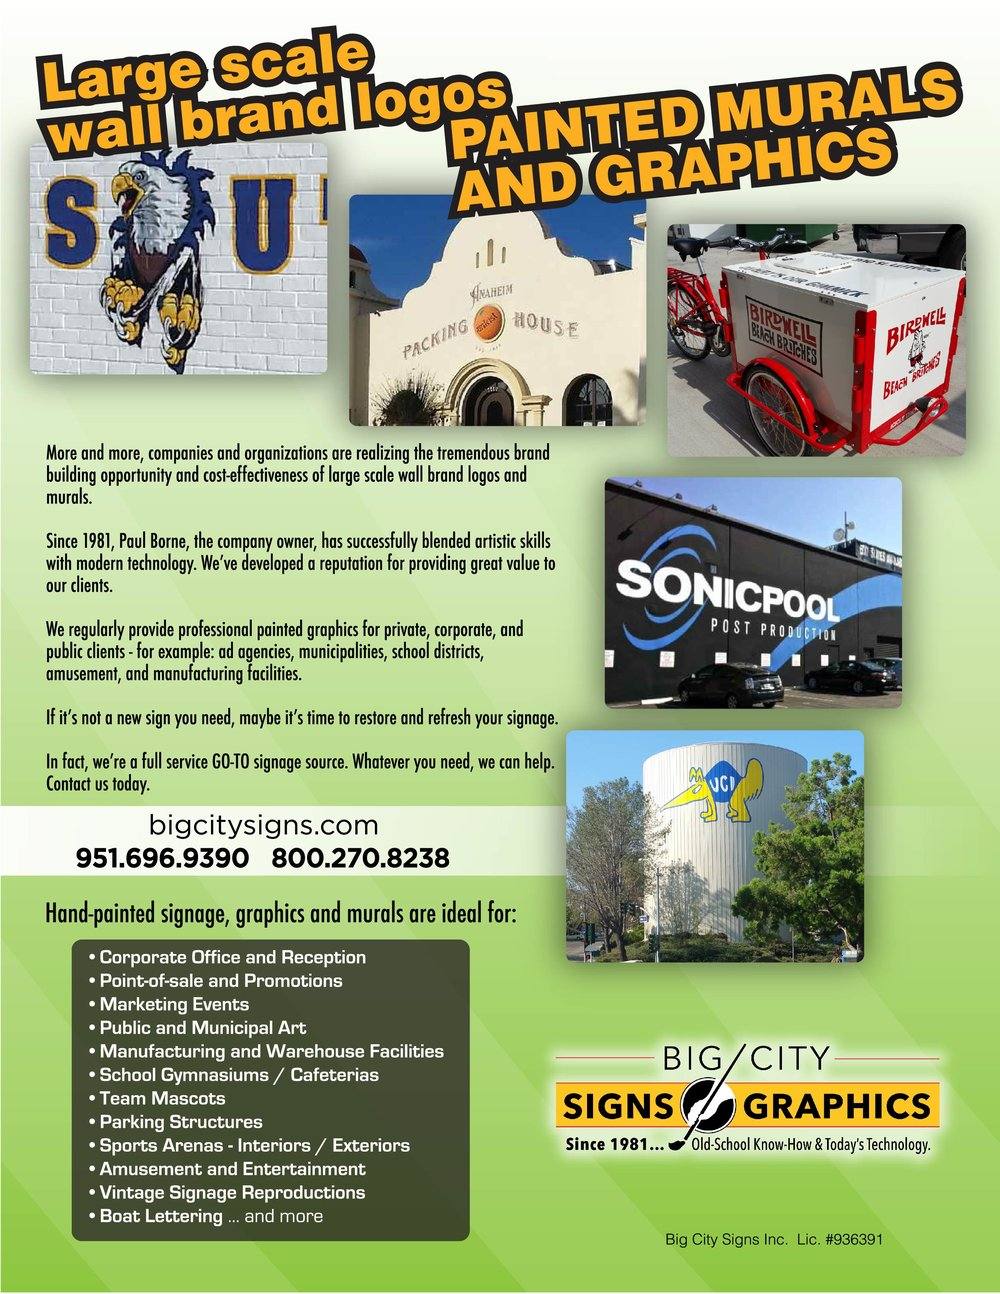 BIG CITY SIGNS PAINTED GRAPHICS BROCHURE